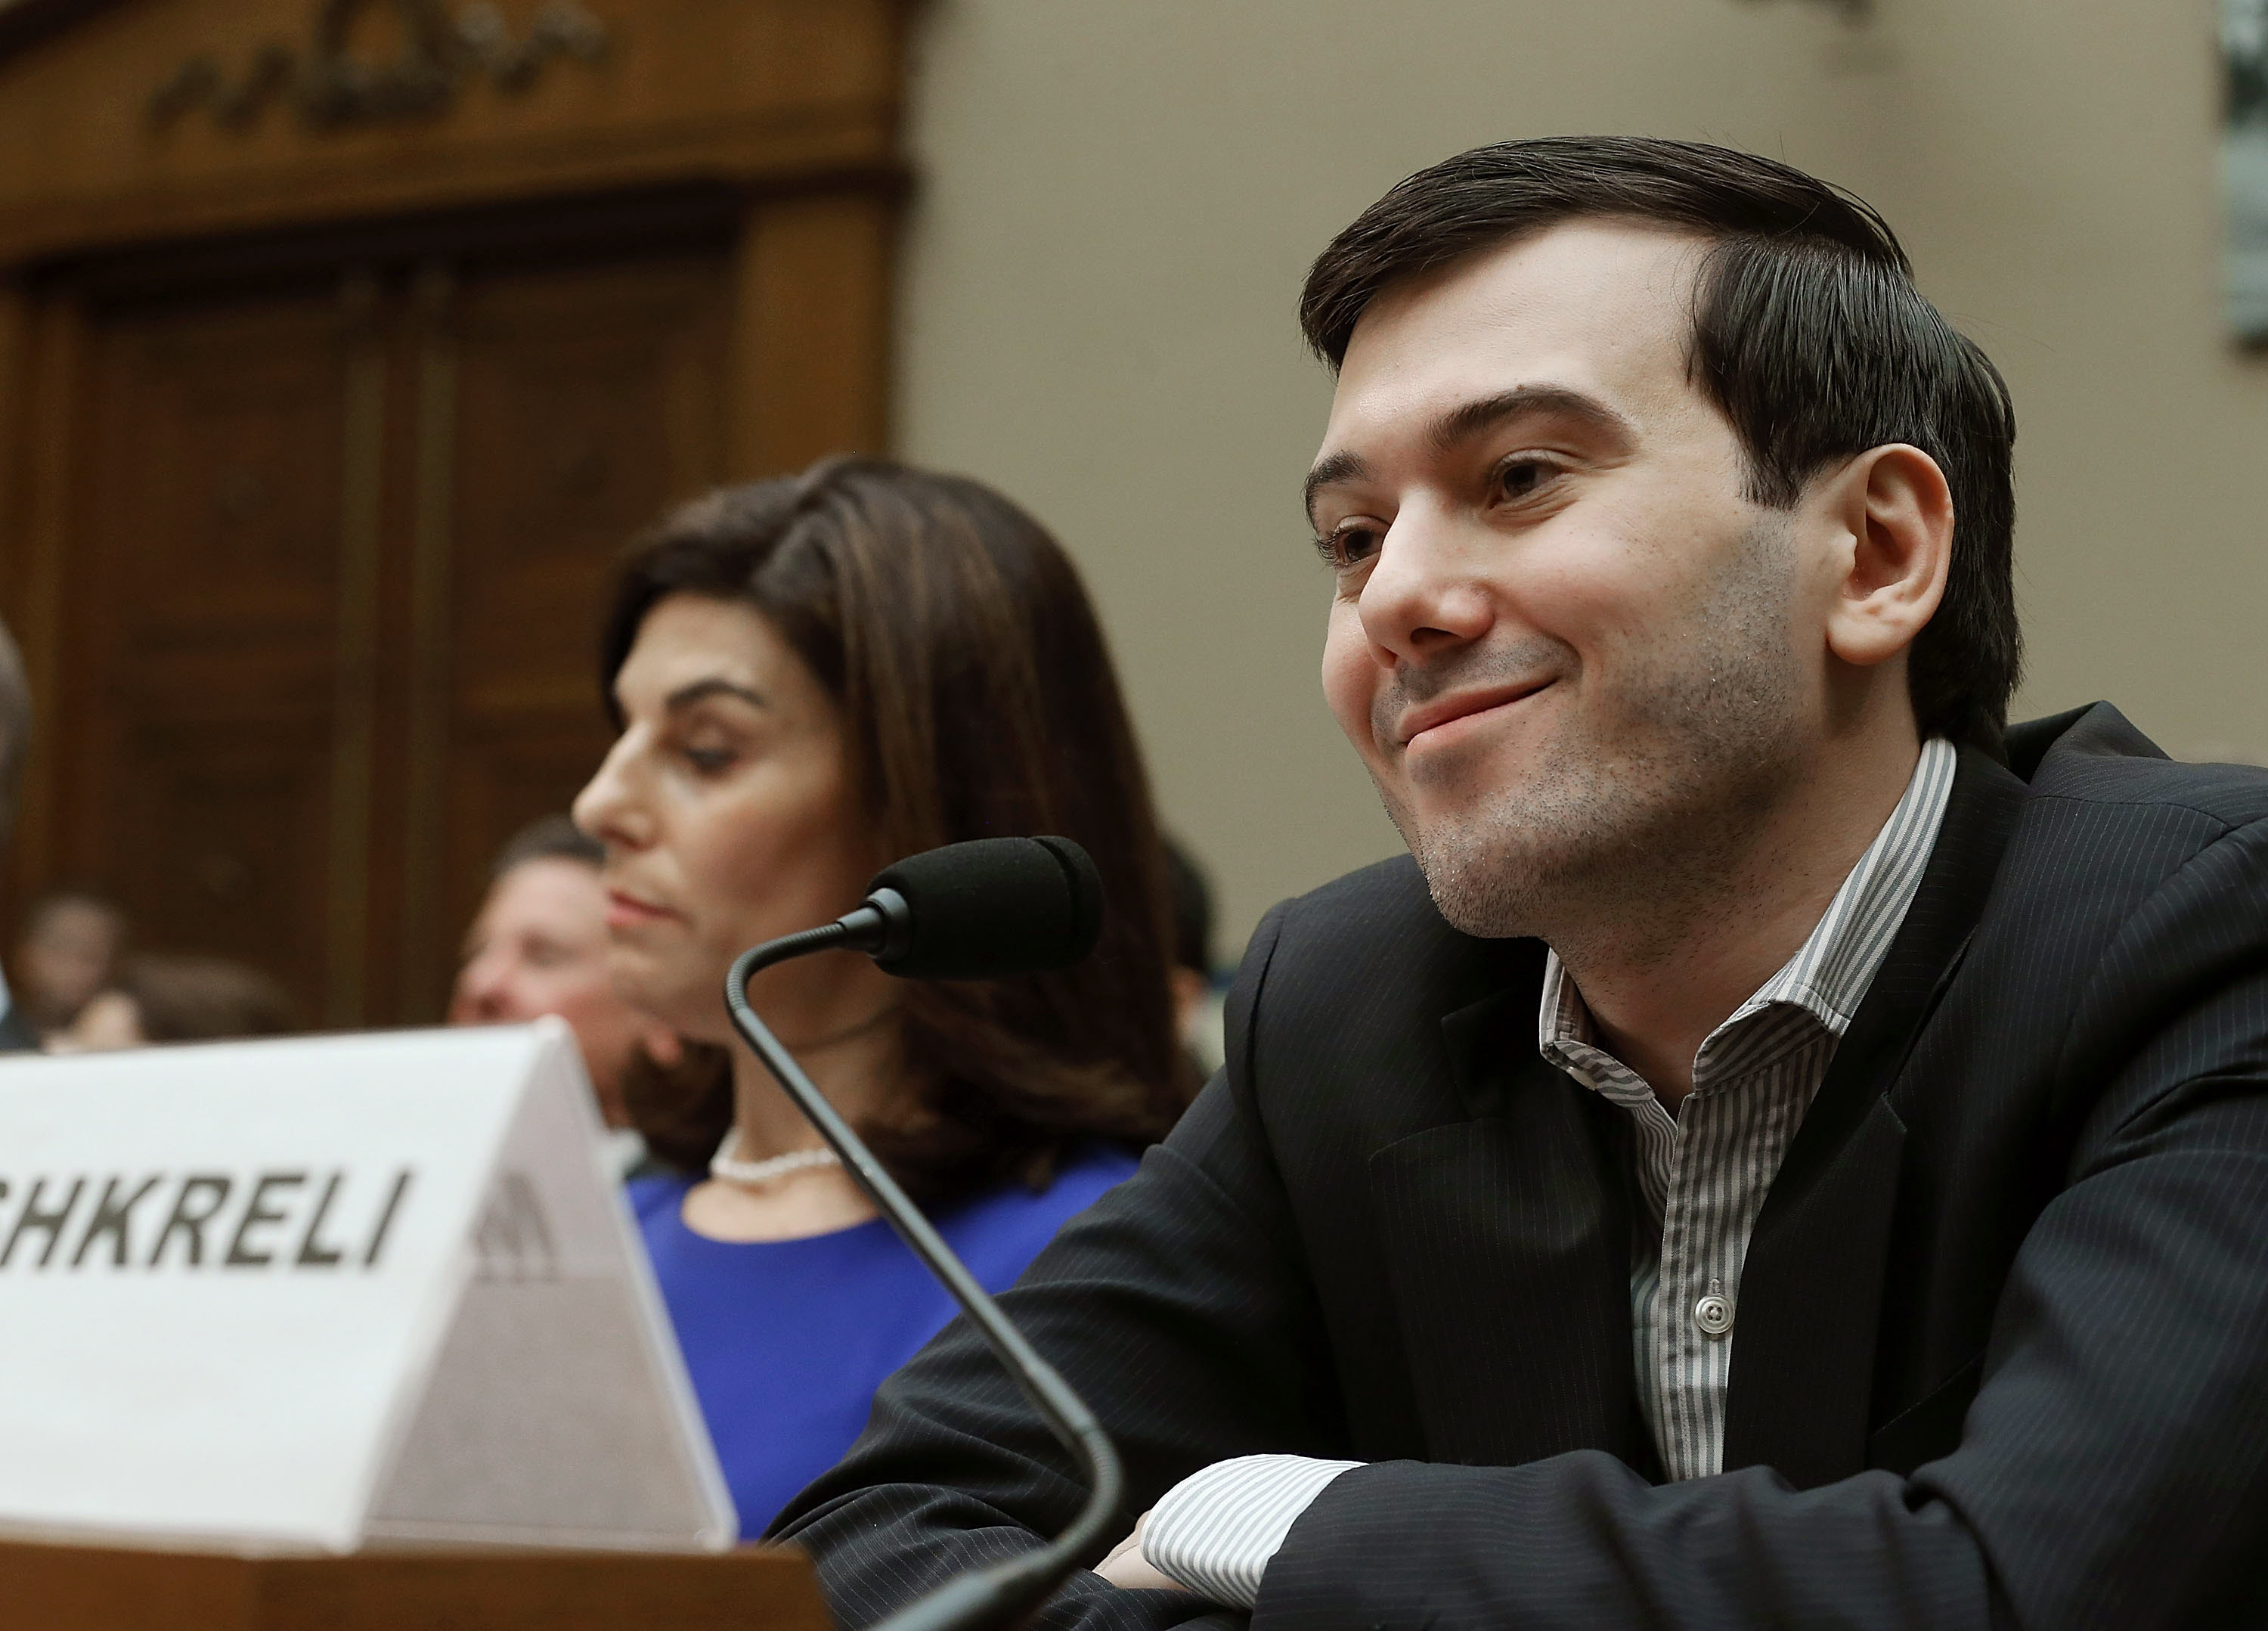 Martin Shkreli, Disgraced Pharmaceutical CEO, Calls Members of Congress 'Imbeciles' After Hearing